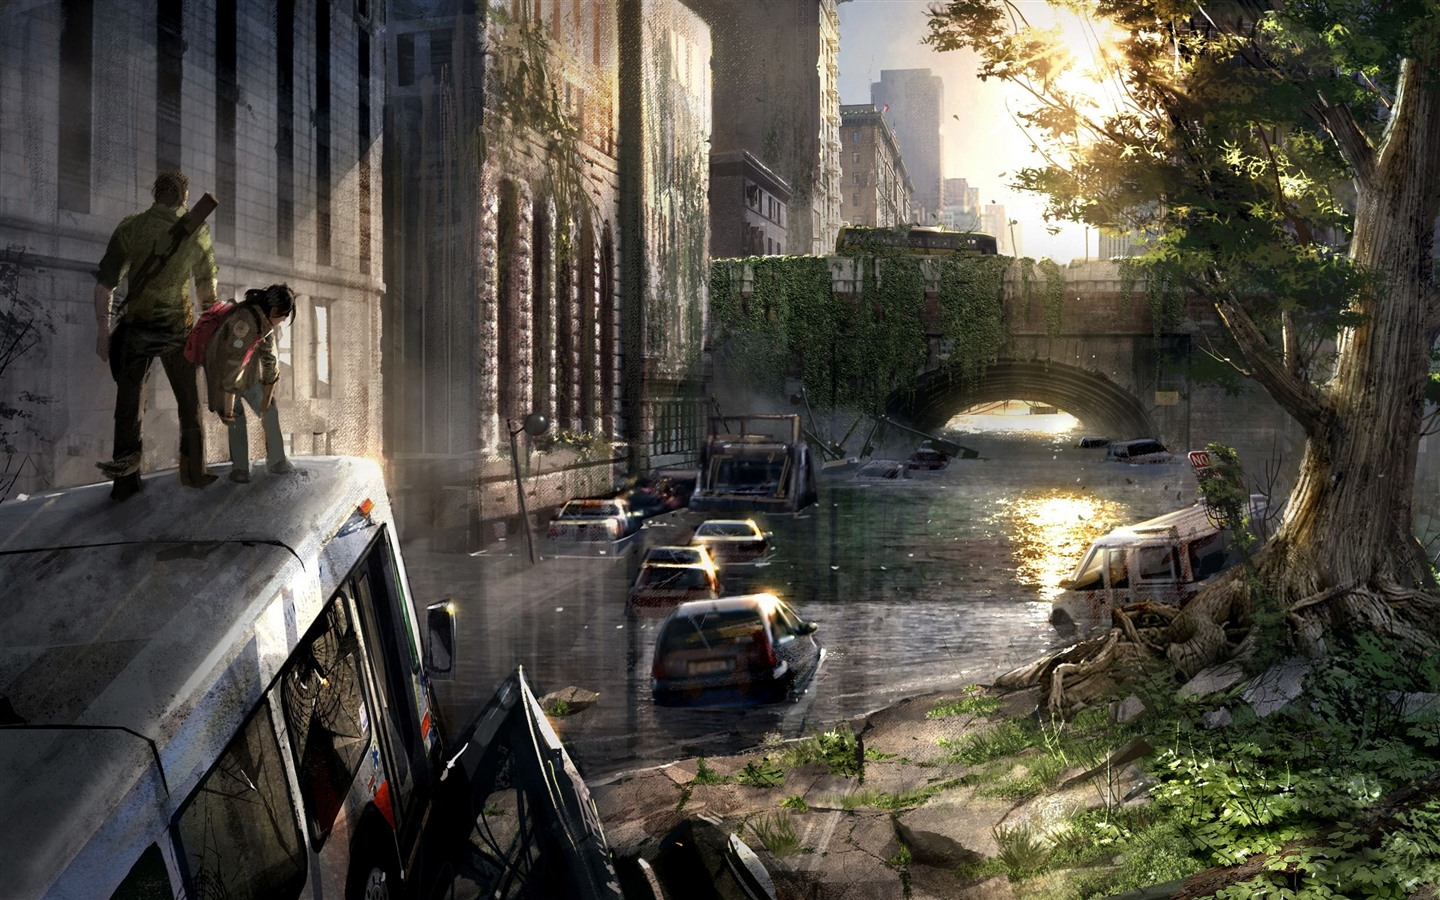 The Last of US HD game wallpapers #3 - 1440x900 Wallpaper